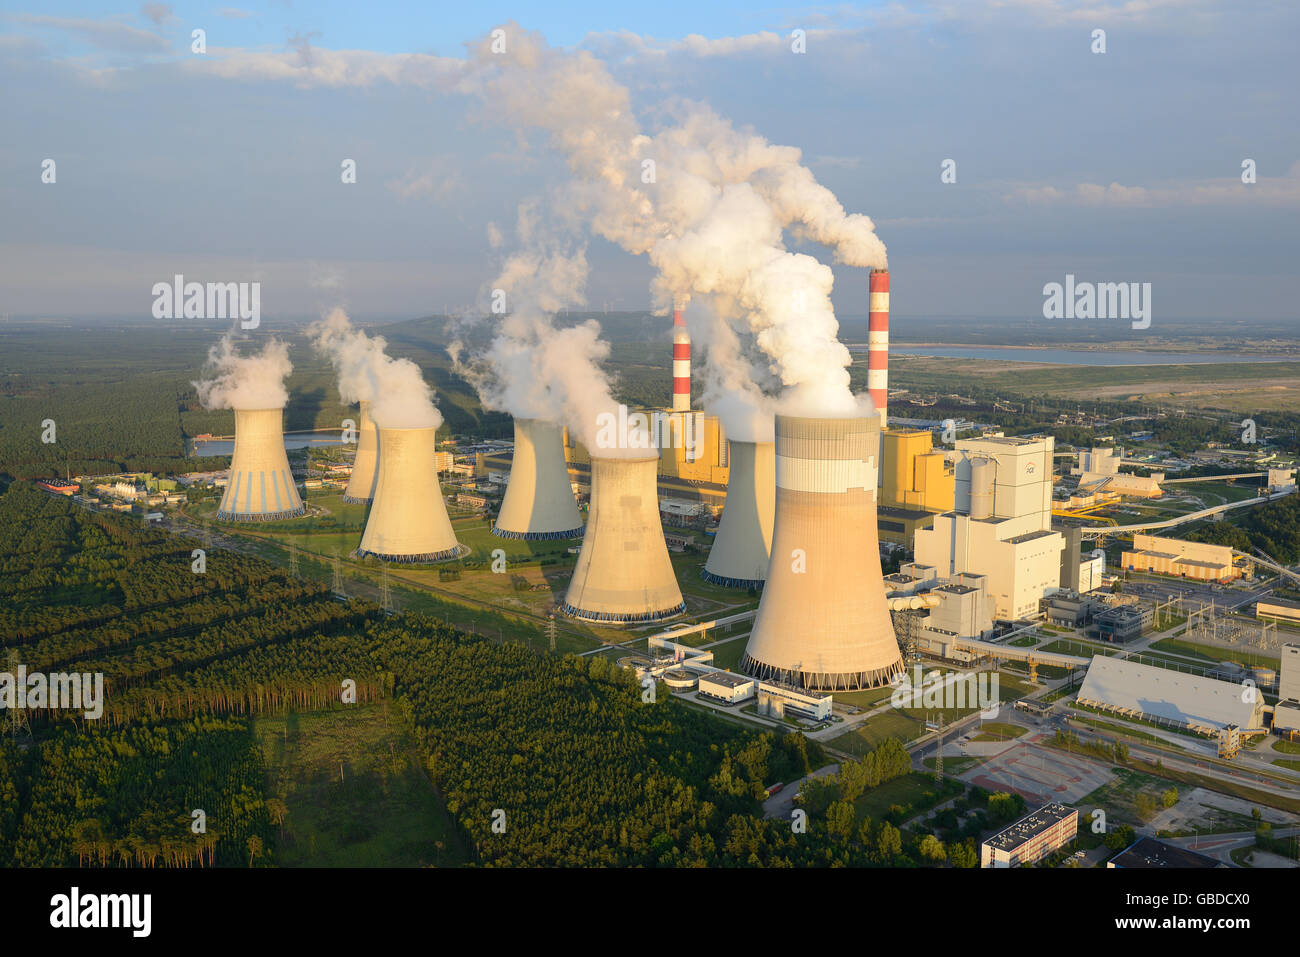 COAL-FIRED POWER PLANT (aerial view). Large power plant near the town of Belchatow in Poland. - Stock Image